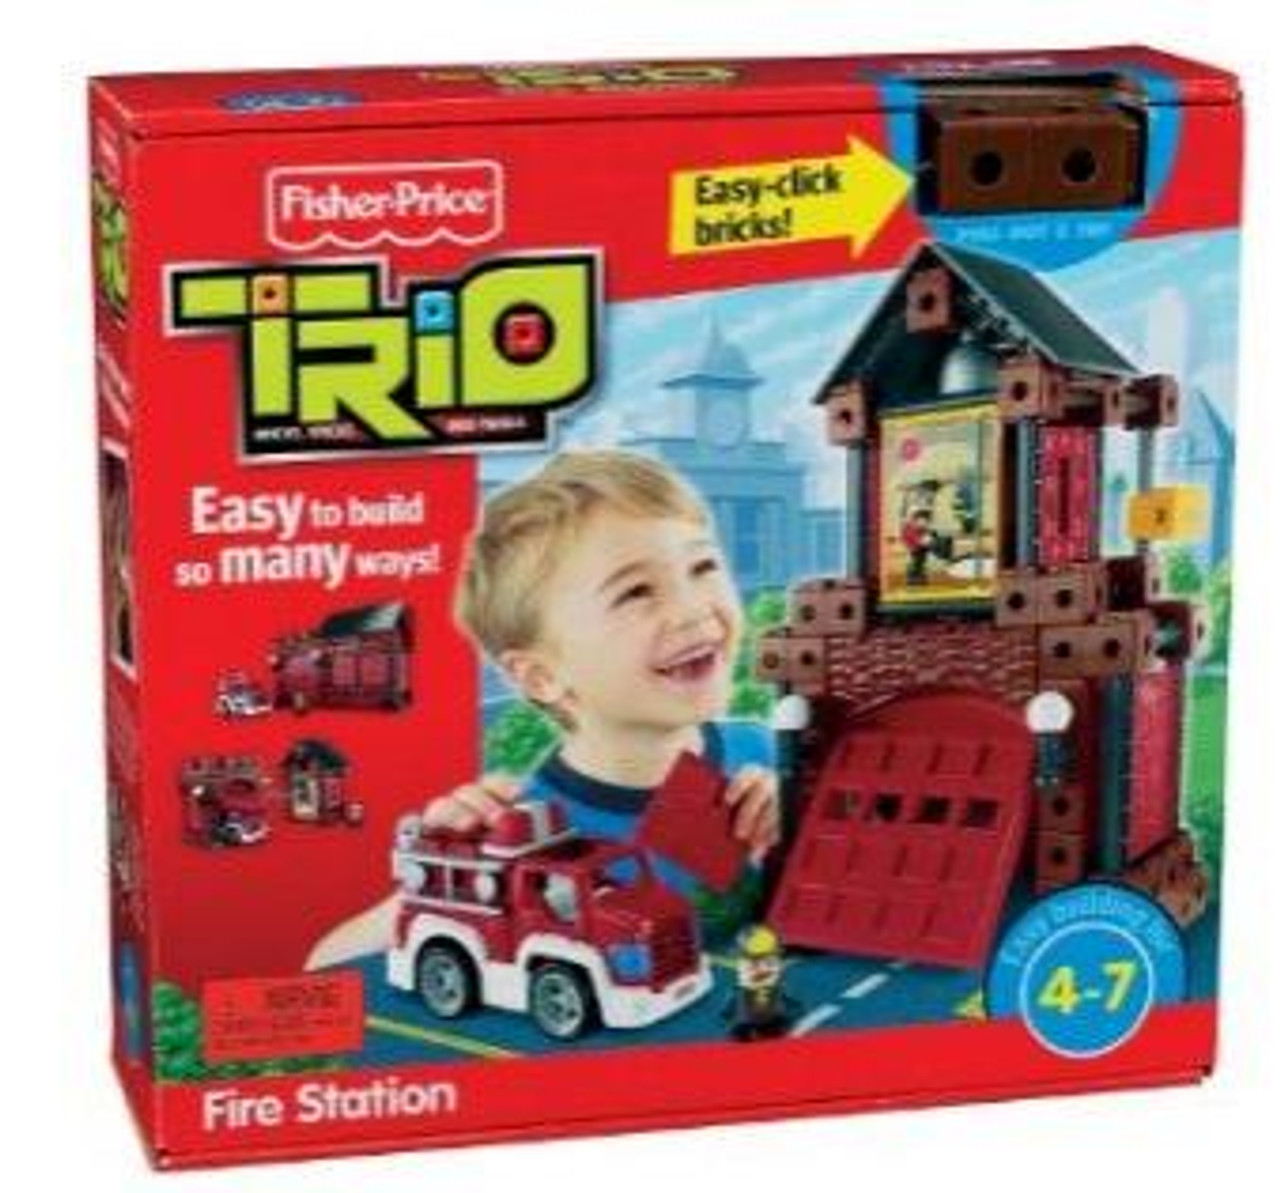 Fisher Price TRIO Fire Station Playset